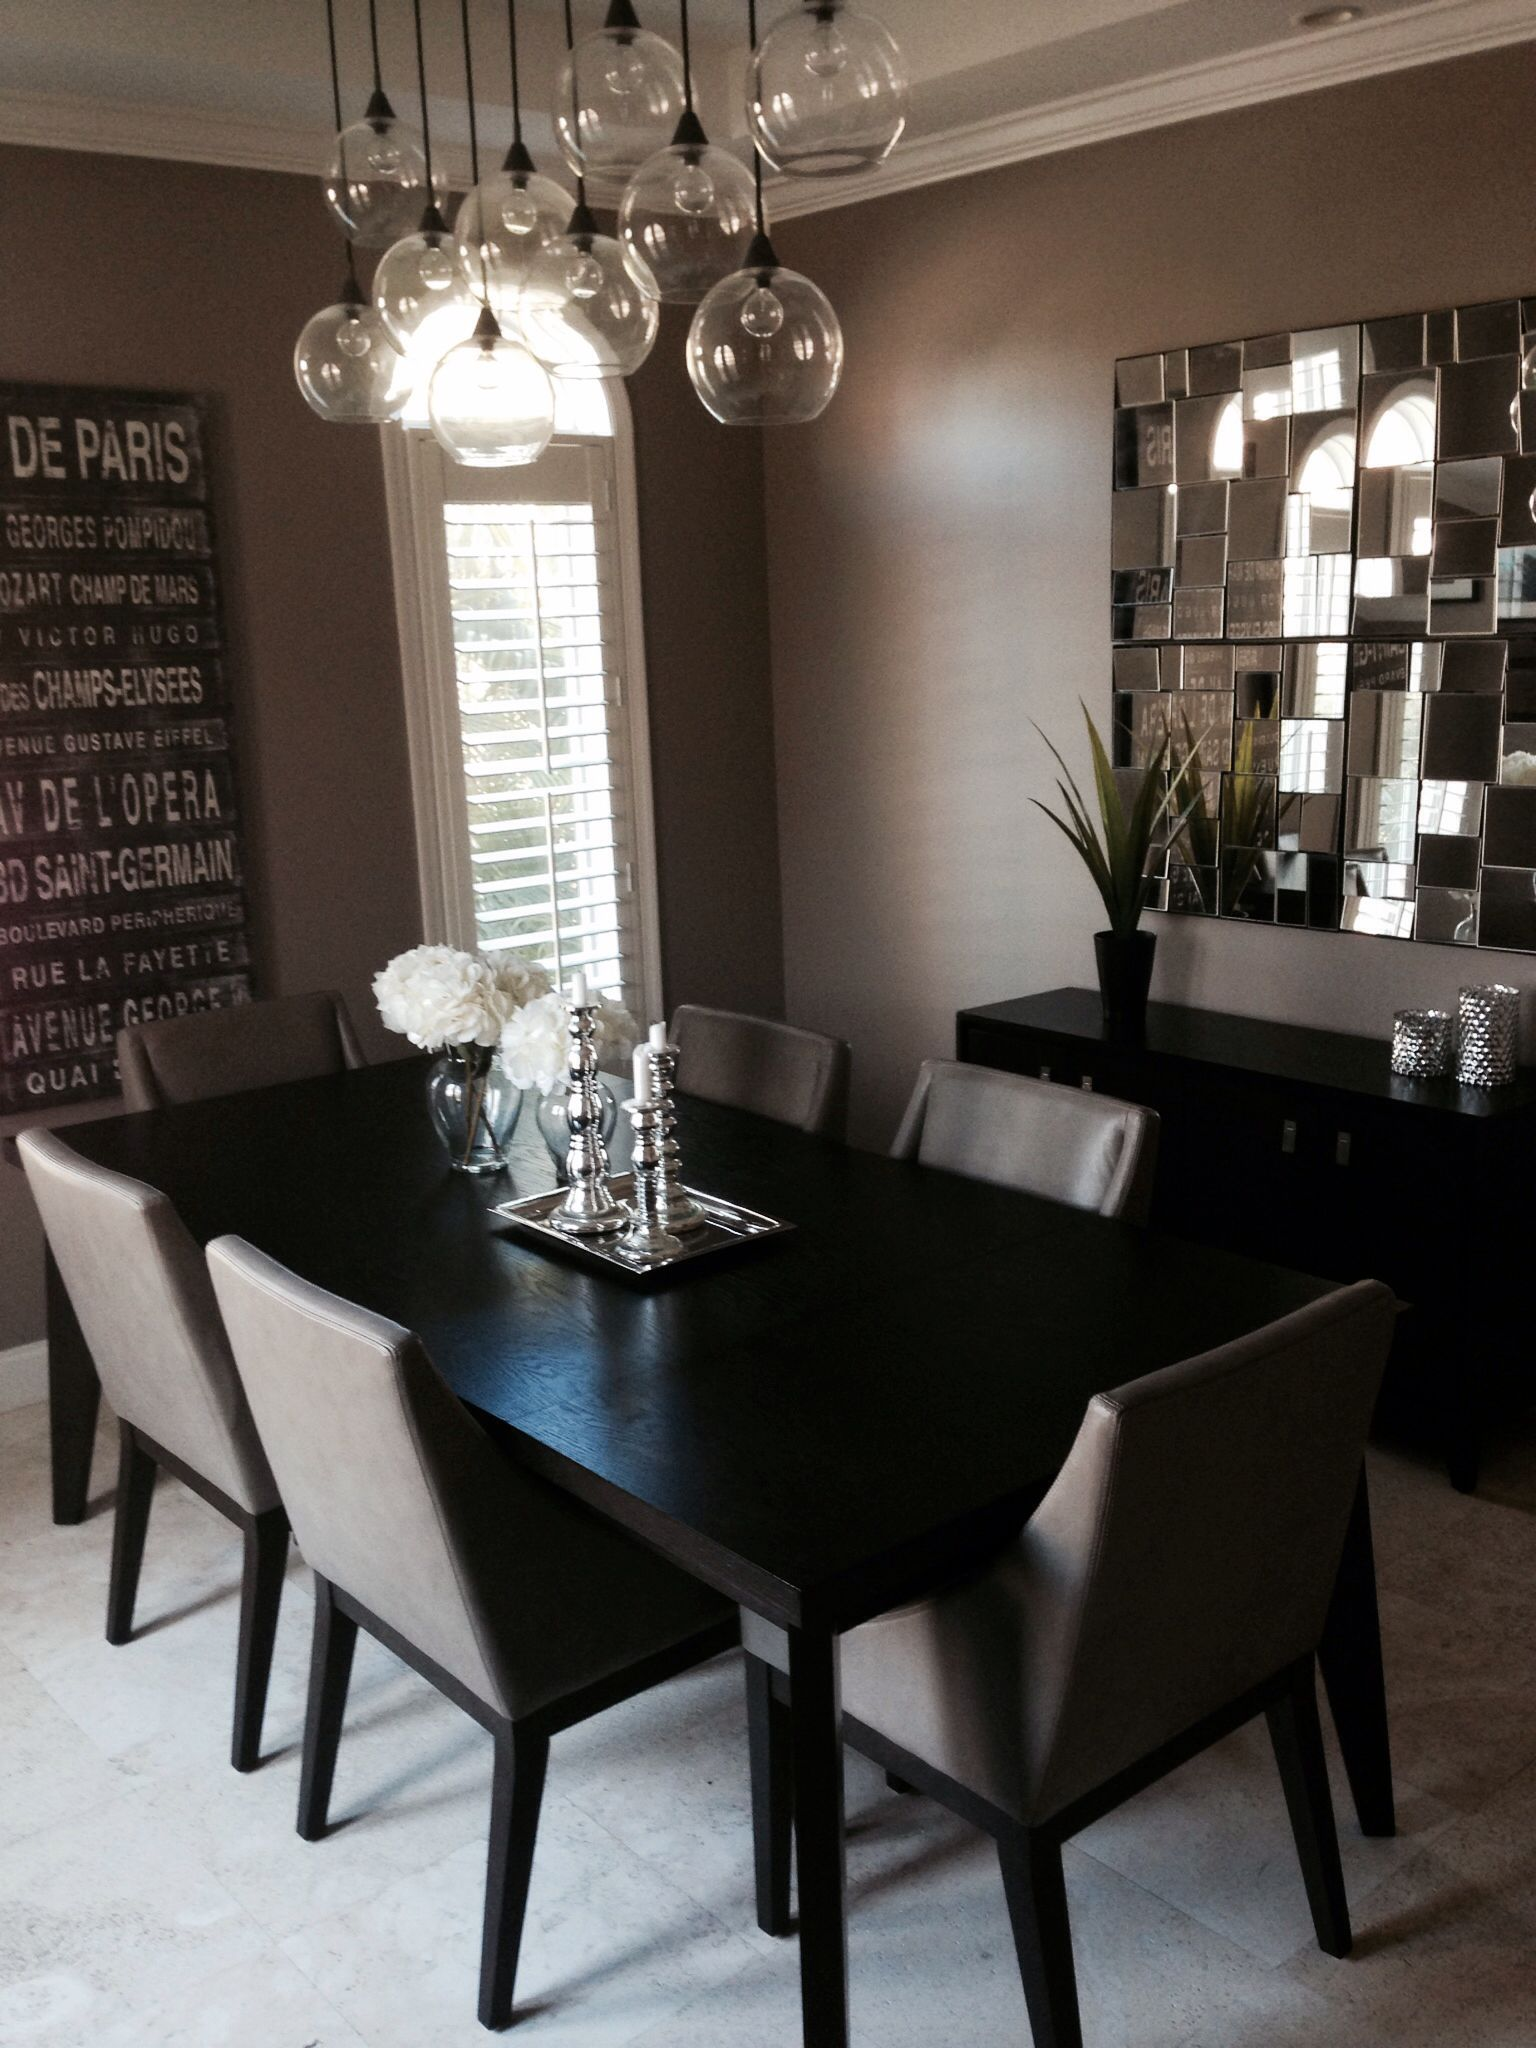 Modern dinning room table and chairs west elm chandelier - Espejos modernos para comedor ...